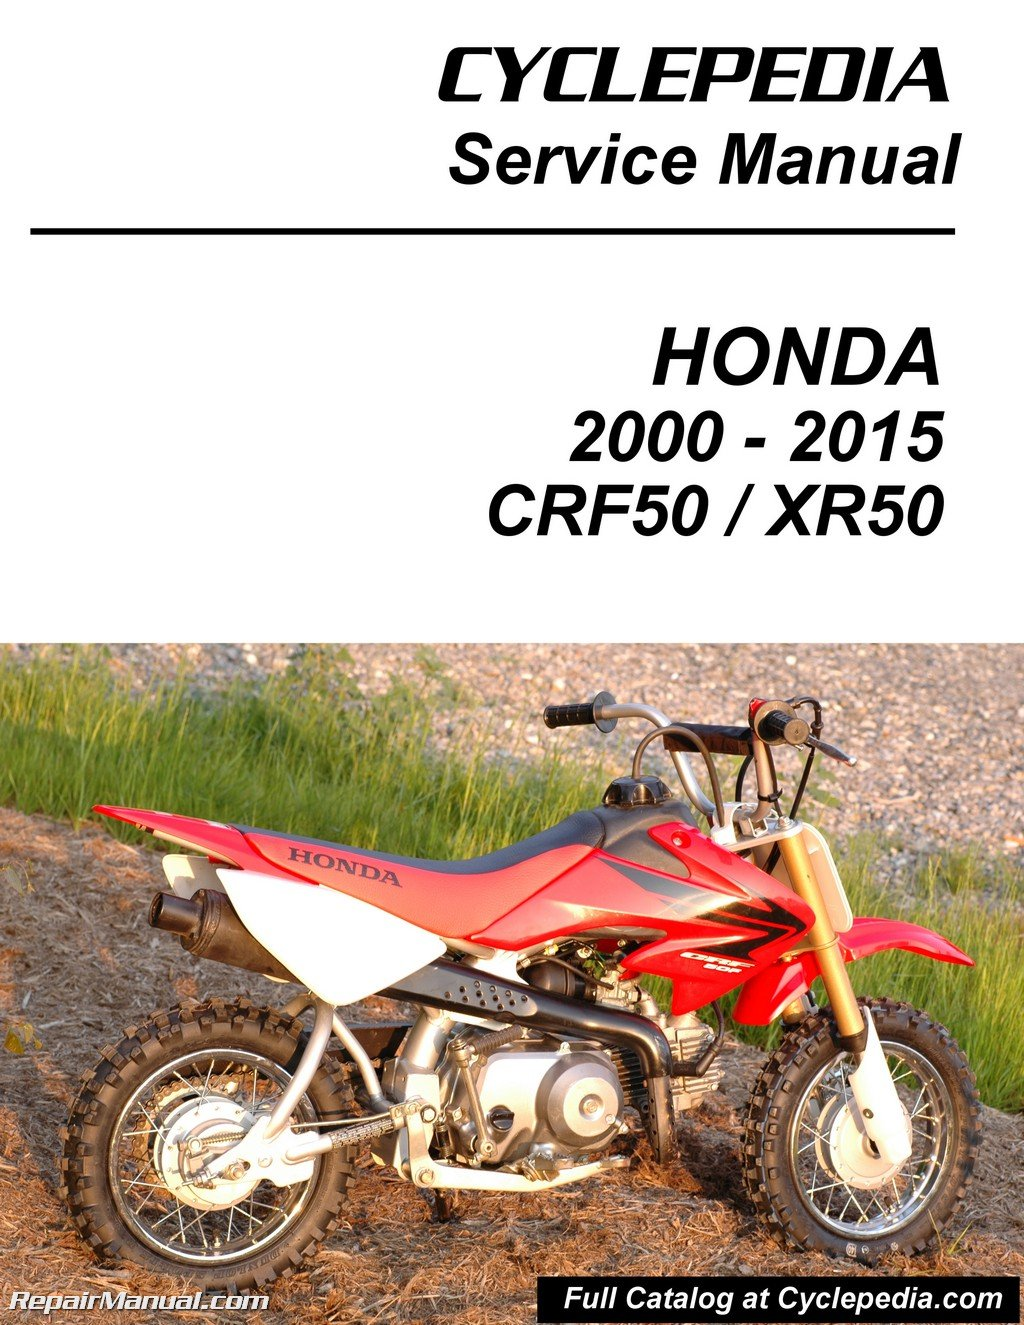 Crf50 Wiring Diagram Library Crf 50 Engine Cpp 120 P Color Honda Xr50 Motorcycle Cyclepedia Printed Service